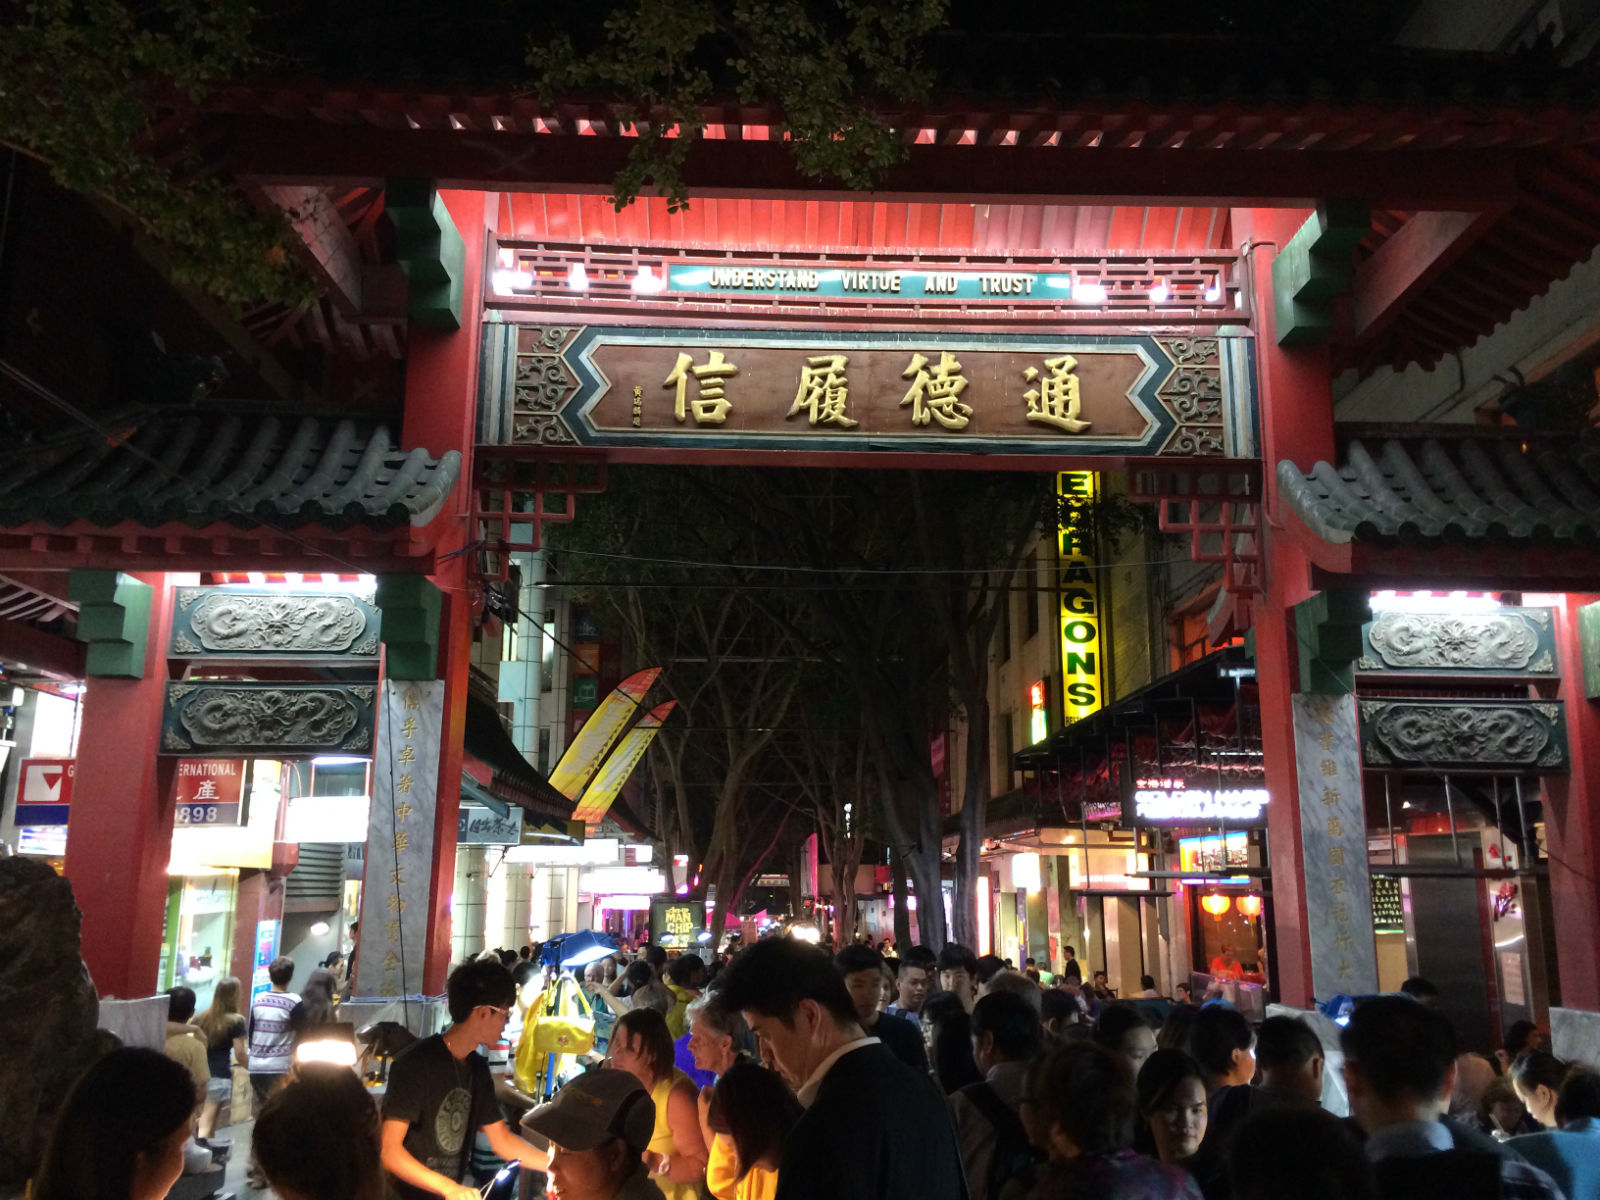 Night Market in Chinatown